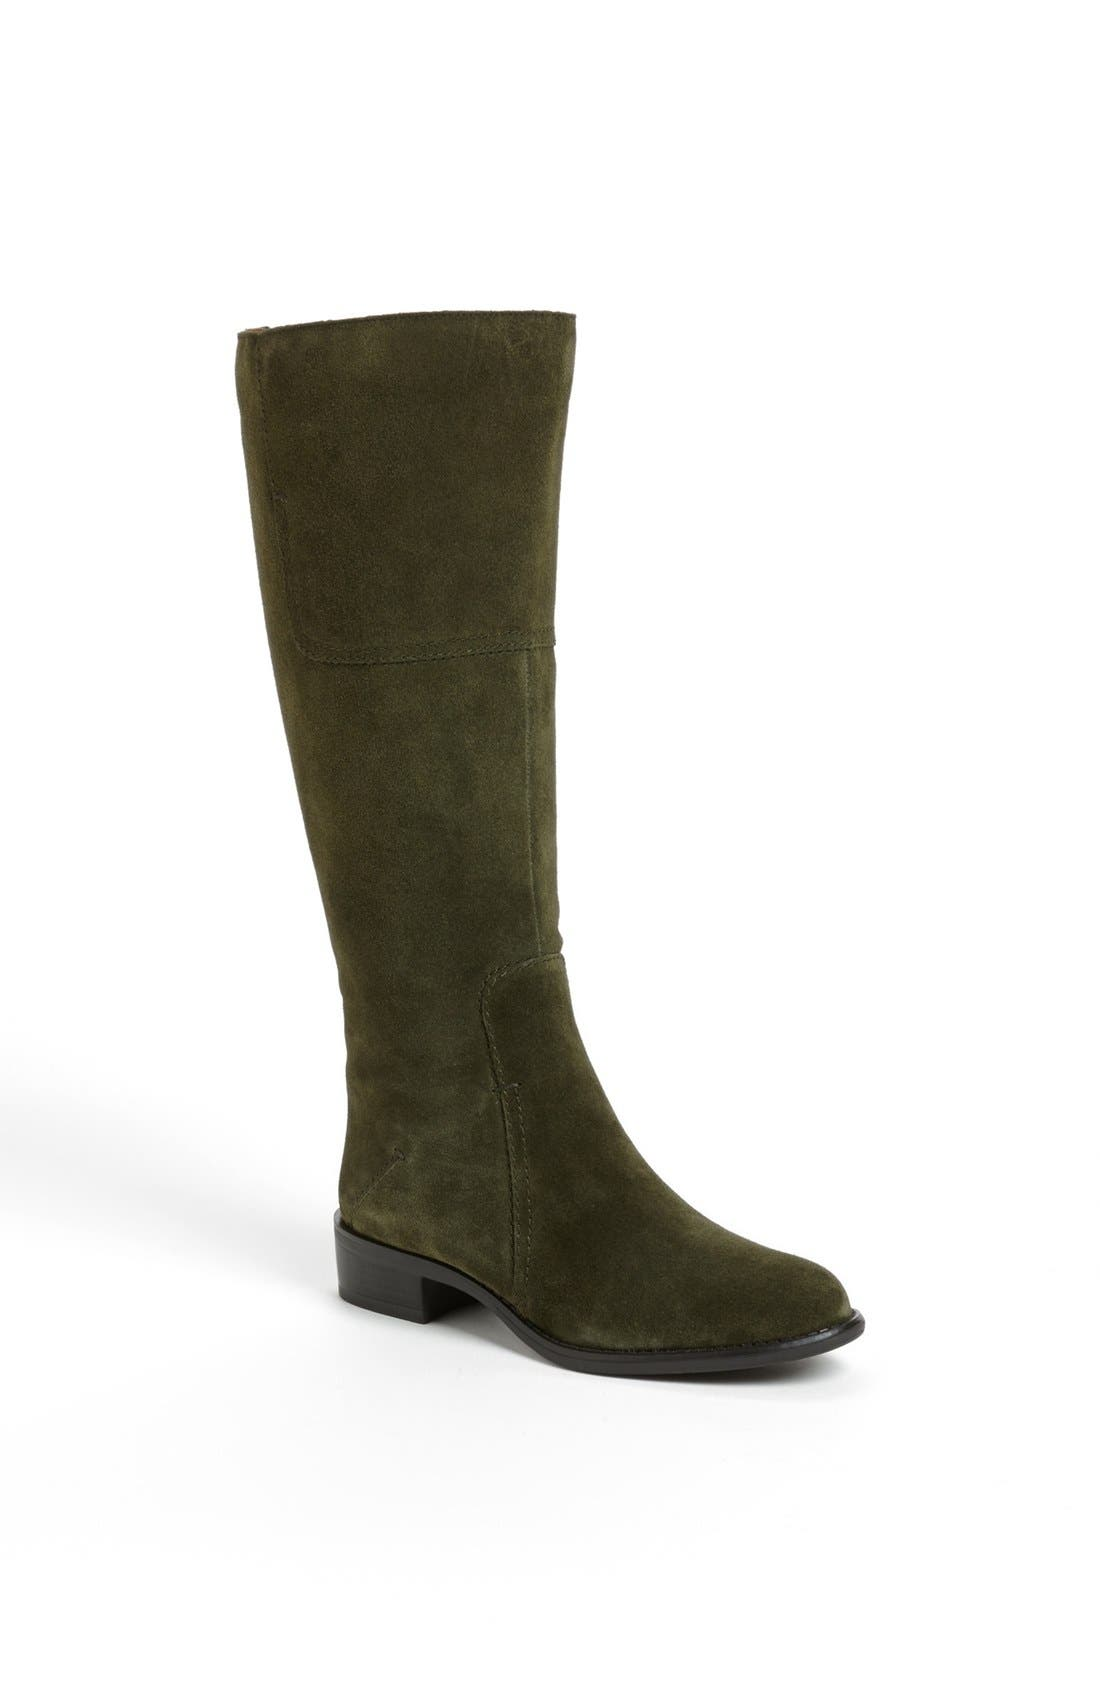 Alternate Image 1 Selected - Franco Sarto 'Cristo' Boot